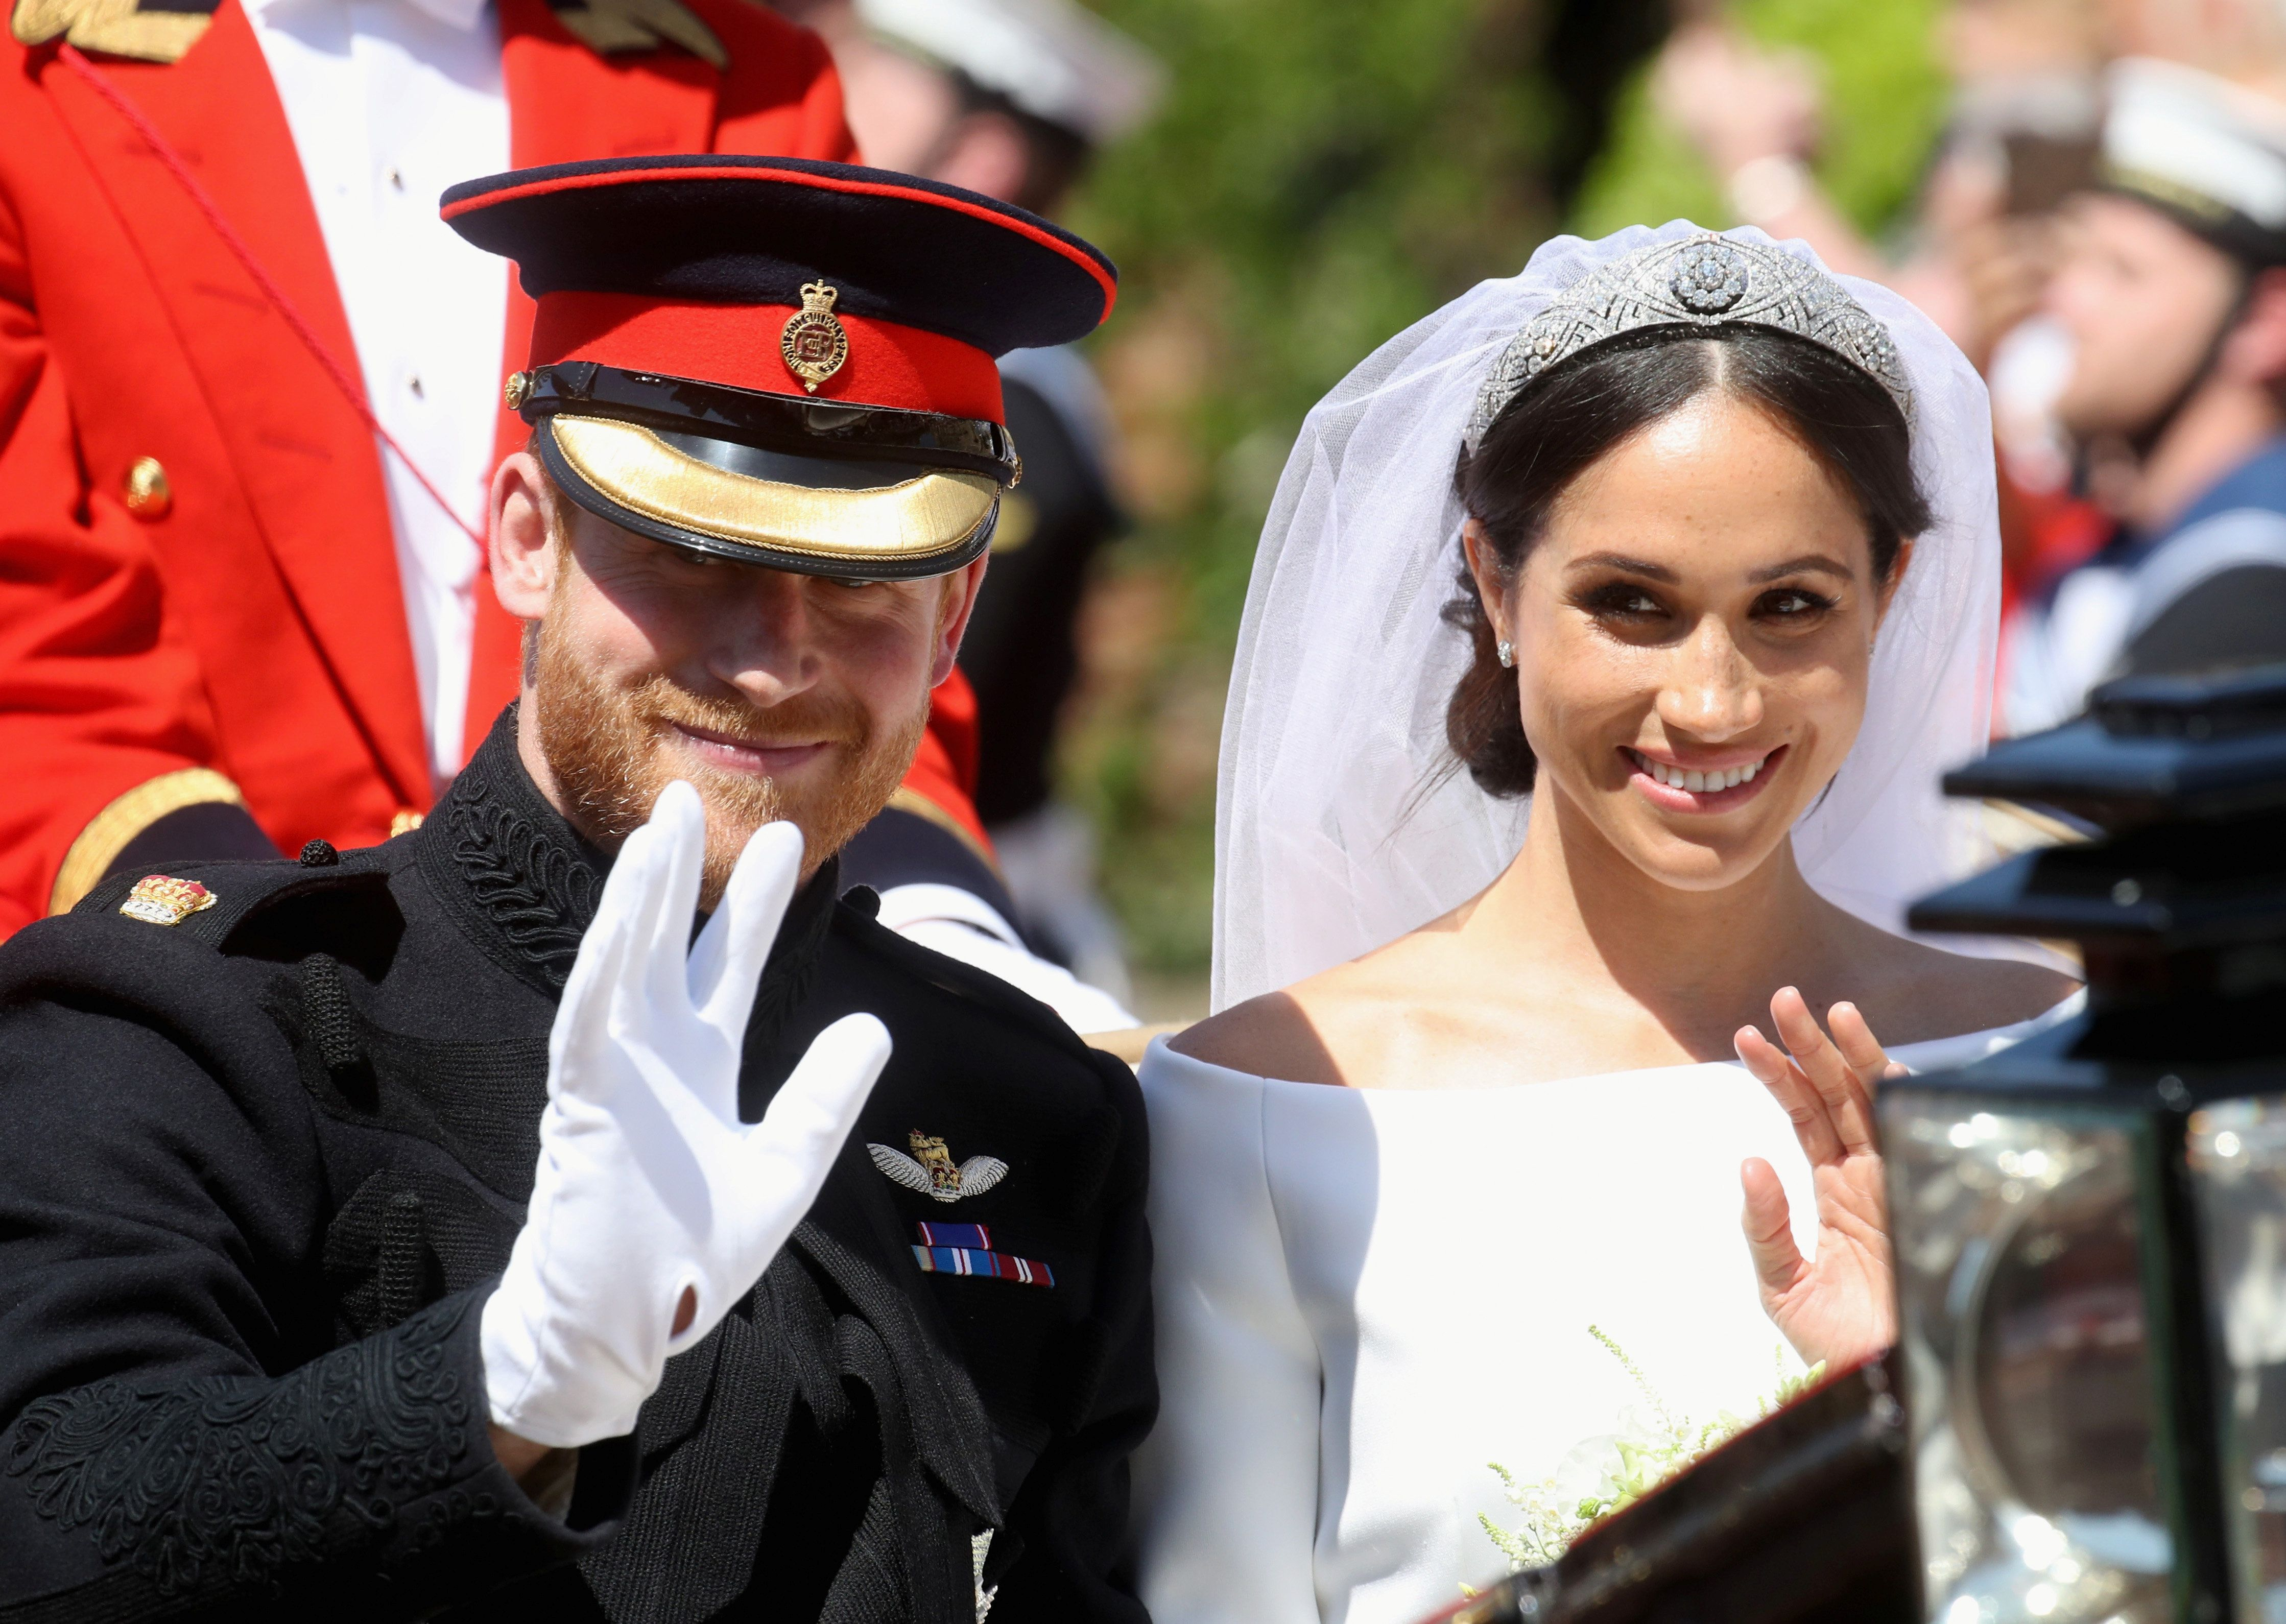 Prince Harry, Duke of Sussex and Meghan, Duchess of Sussex leave Windsor Castle in the Ascot Landau carriage during a procession after getting married at St Georges Chapel on May 19, 2018 in Windsor, England. Prince Henry Charles Albert David of Wales marries Ms. Meghan Markle in a service at St George's Chapel inside the grounds of Windsor Castle. Among the guests were 2200 members of the public, the royal family and Ms. Markle's Mother Doria Ragland.  Chris Jackson/Pool via REUTERS